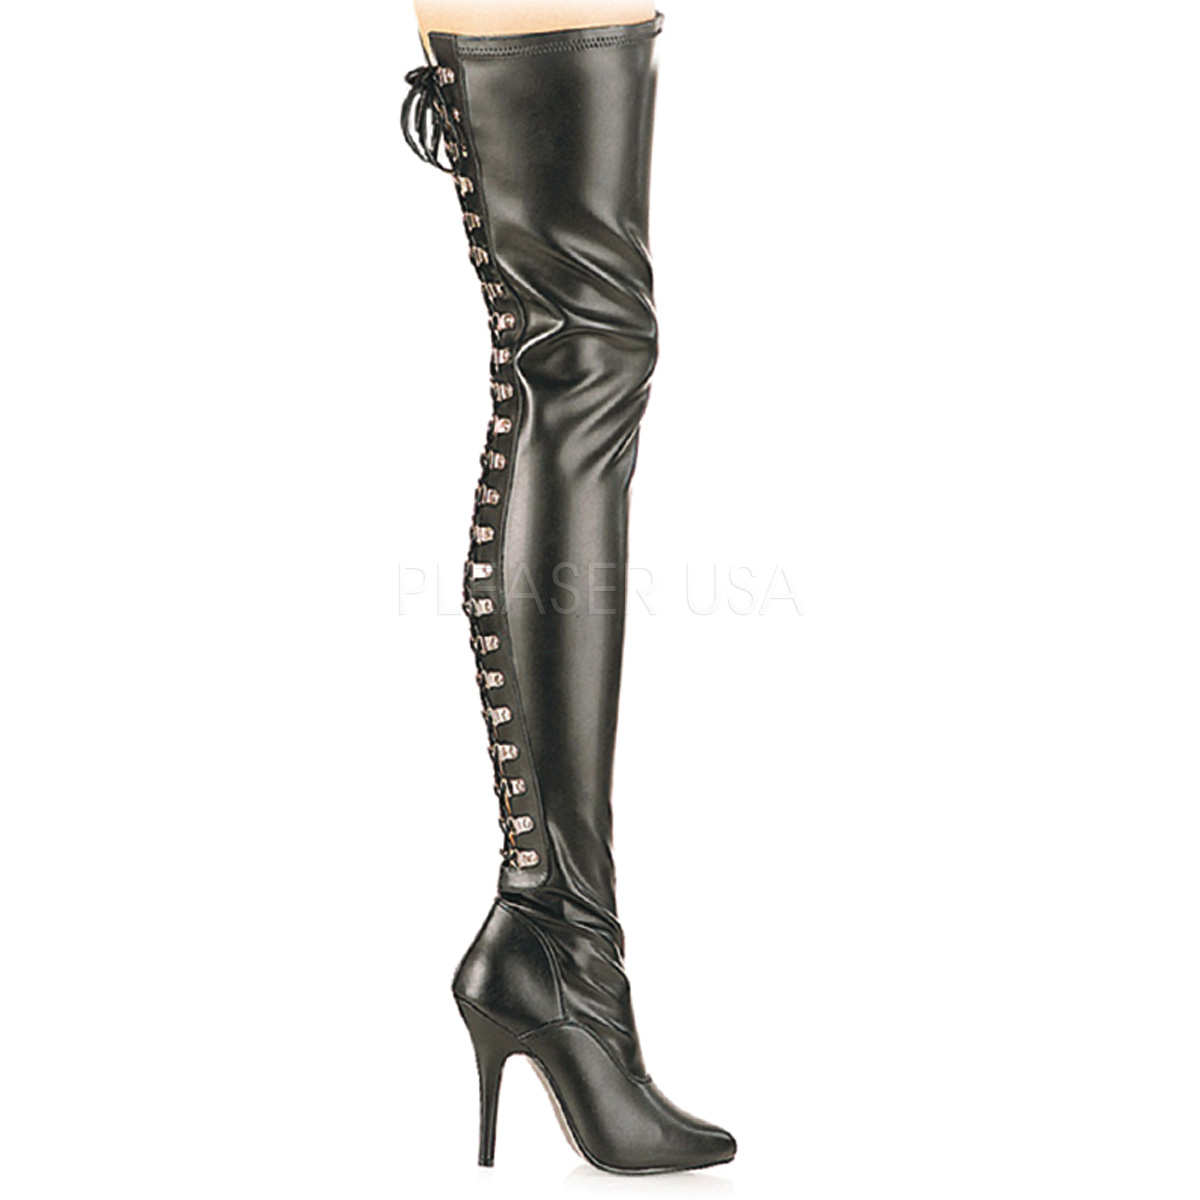 5 Inch Stiletto Heel D-Ring Rear-Lace Stretch Thigh High Boots